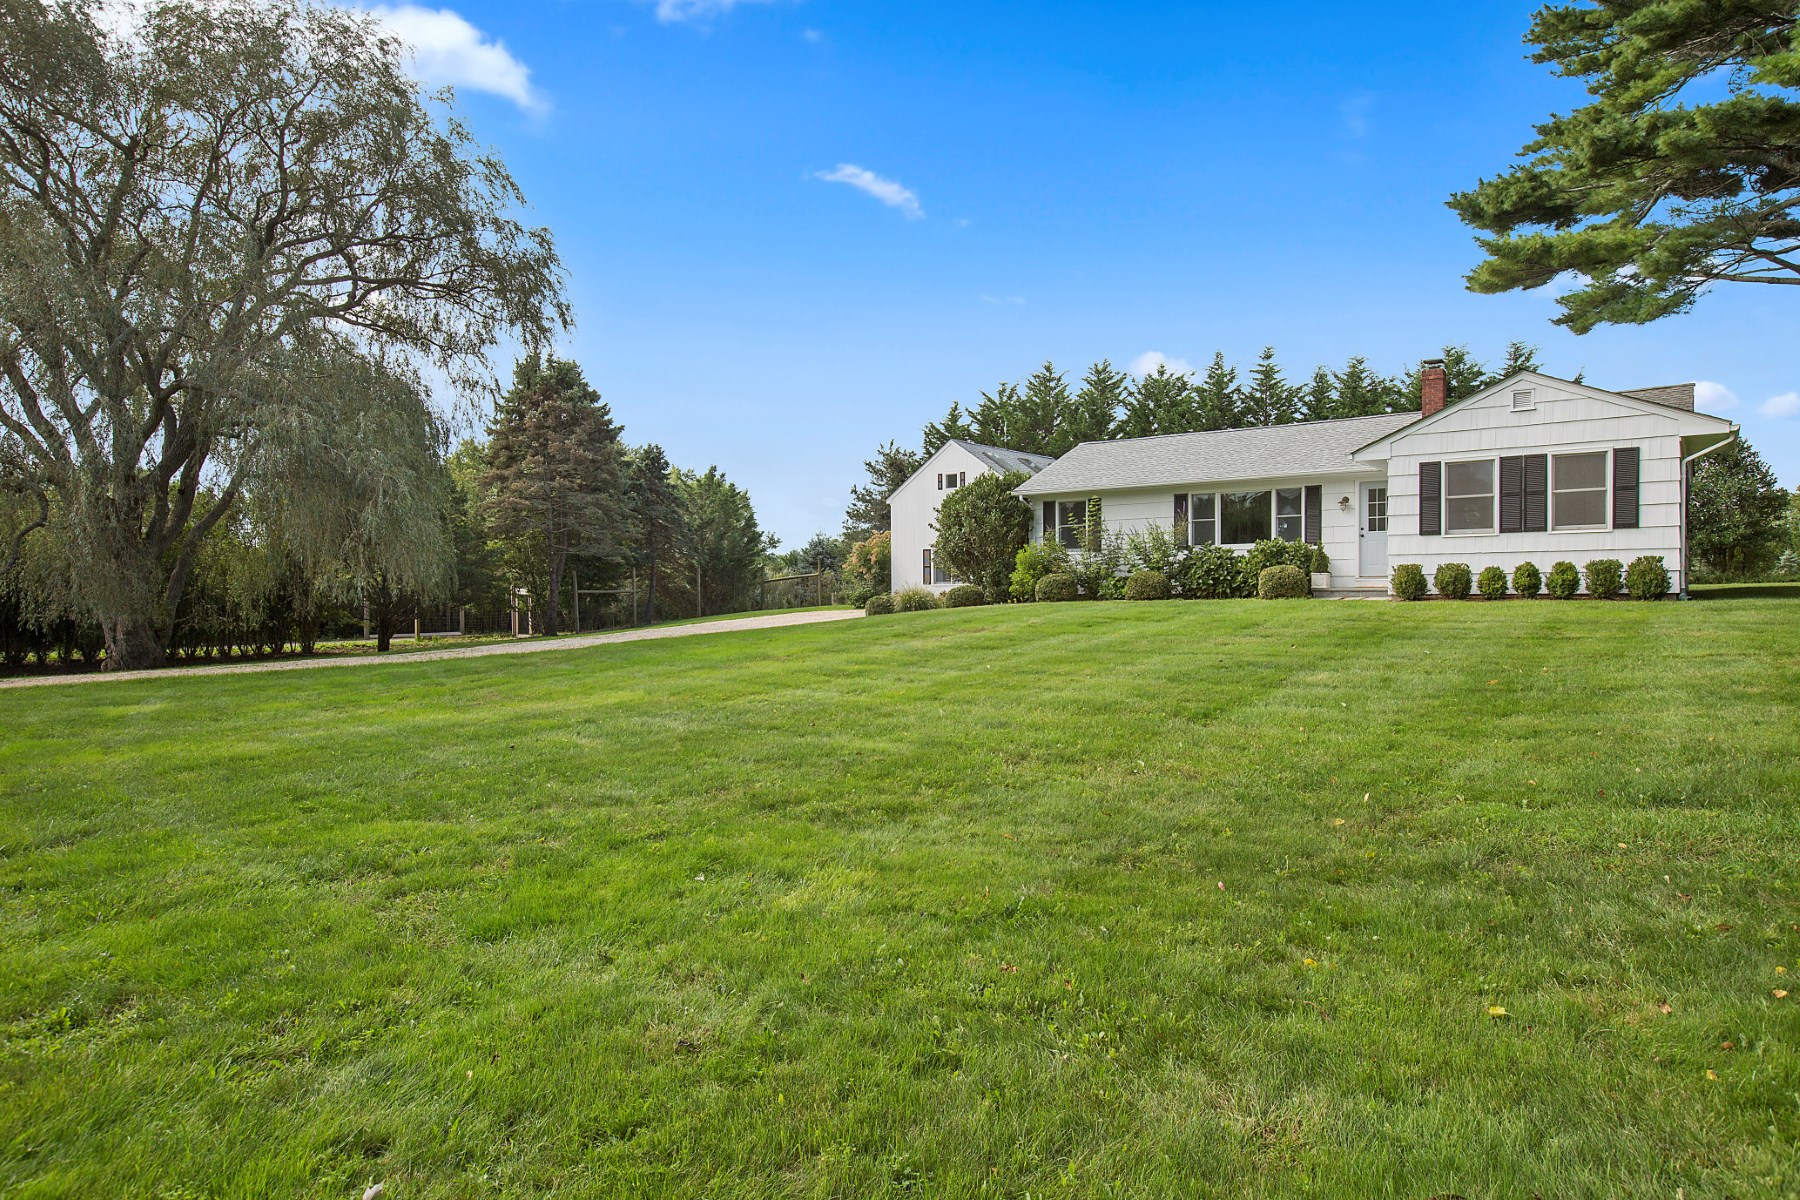 واحد منزل الأسرة للـ Rent في Bridgehampton Convenience 630 Lumber Lane, Bridgehampton North, Bridgehampton, New York, 11932 United States